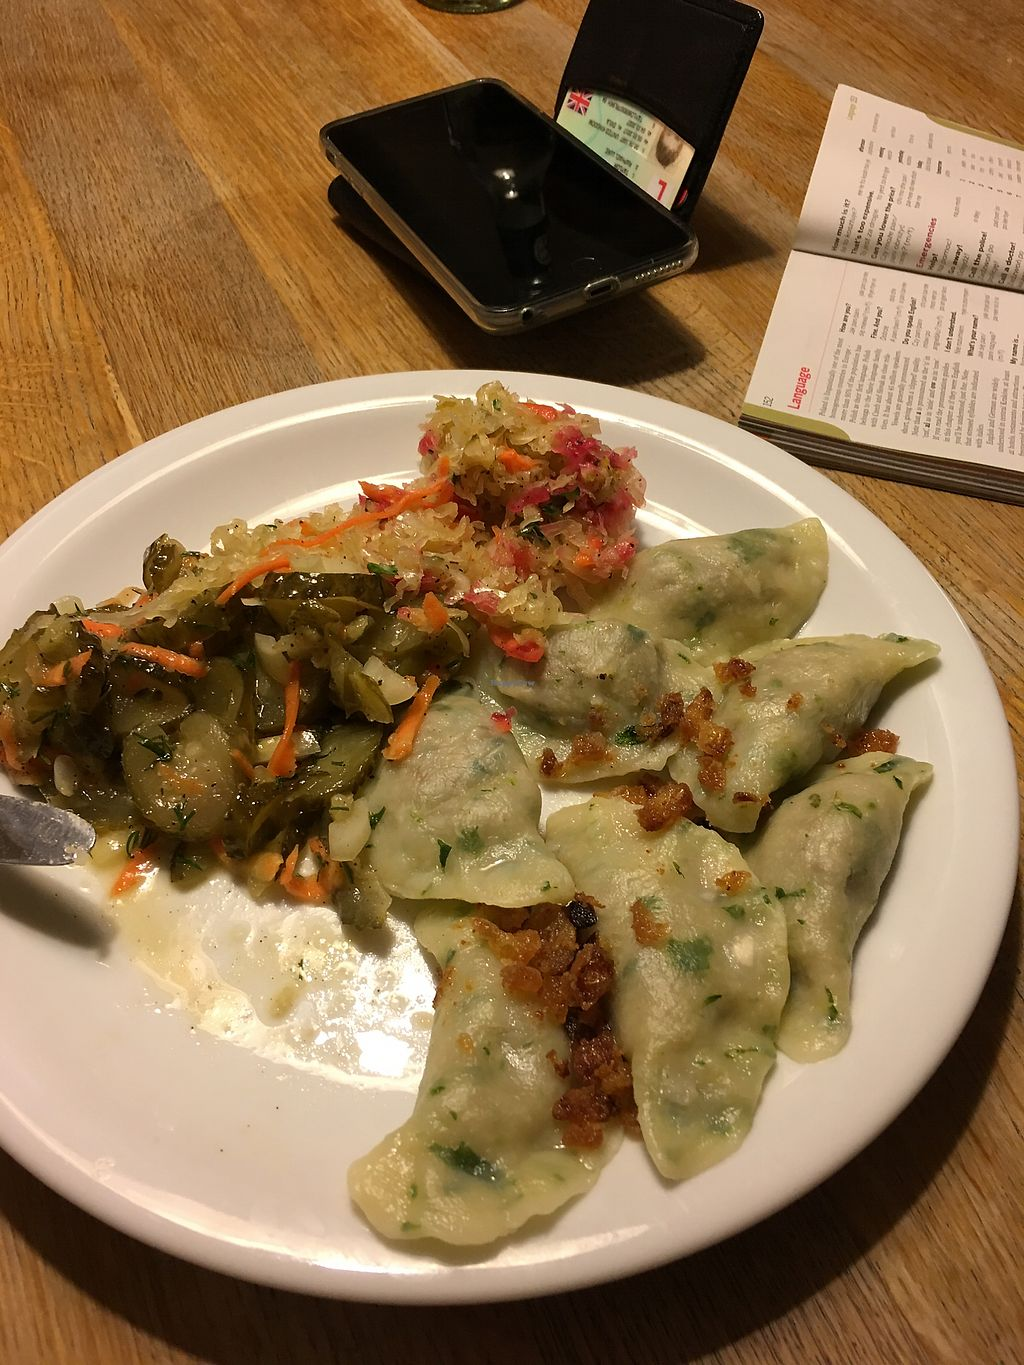 """Photo of Glonojad  by <a href=""""/members/profile/MillieRose"""">MillieRose</a> <br/>Only remembered to take after starting to eat! Vegan lentil dumplings with sauerkraut and pickle salad <br/> April 10, 2018  - <a href='/contact/abuse/image/20526/383249'>Report</a>"""